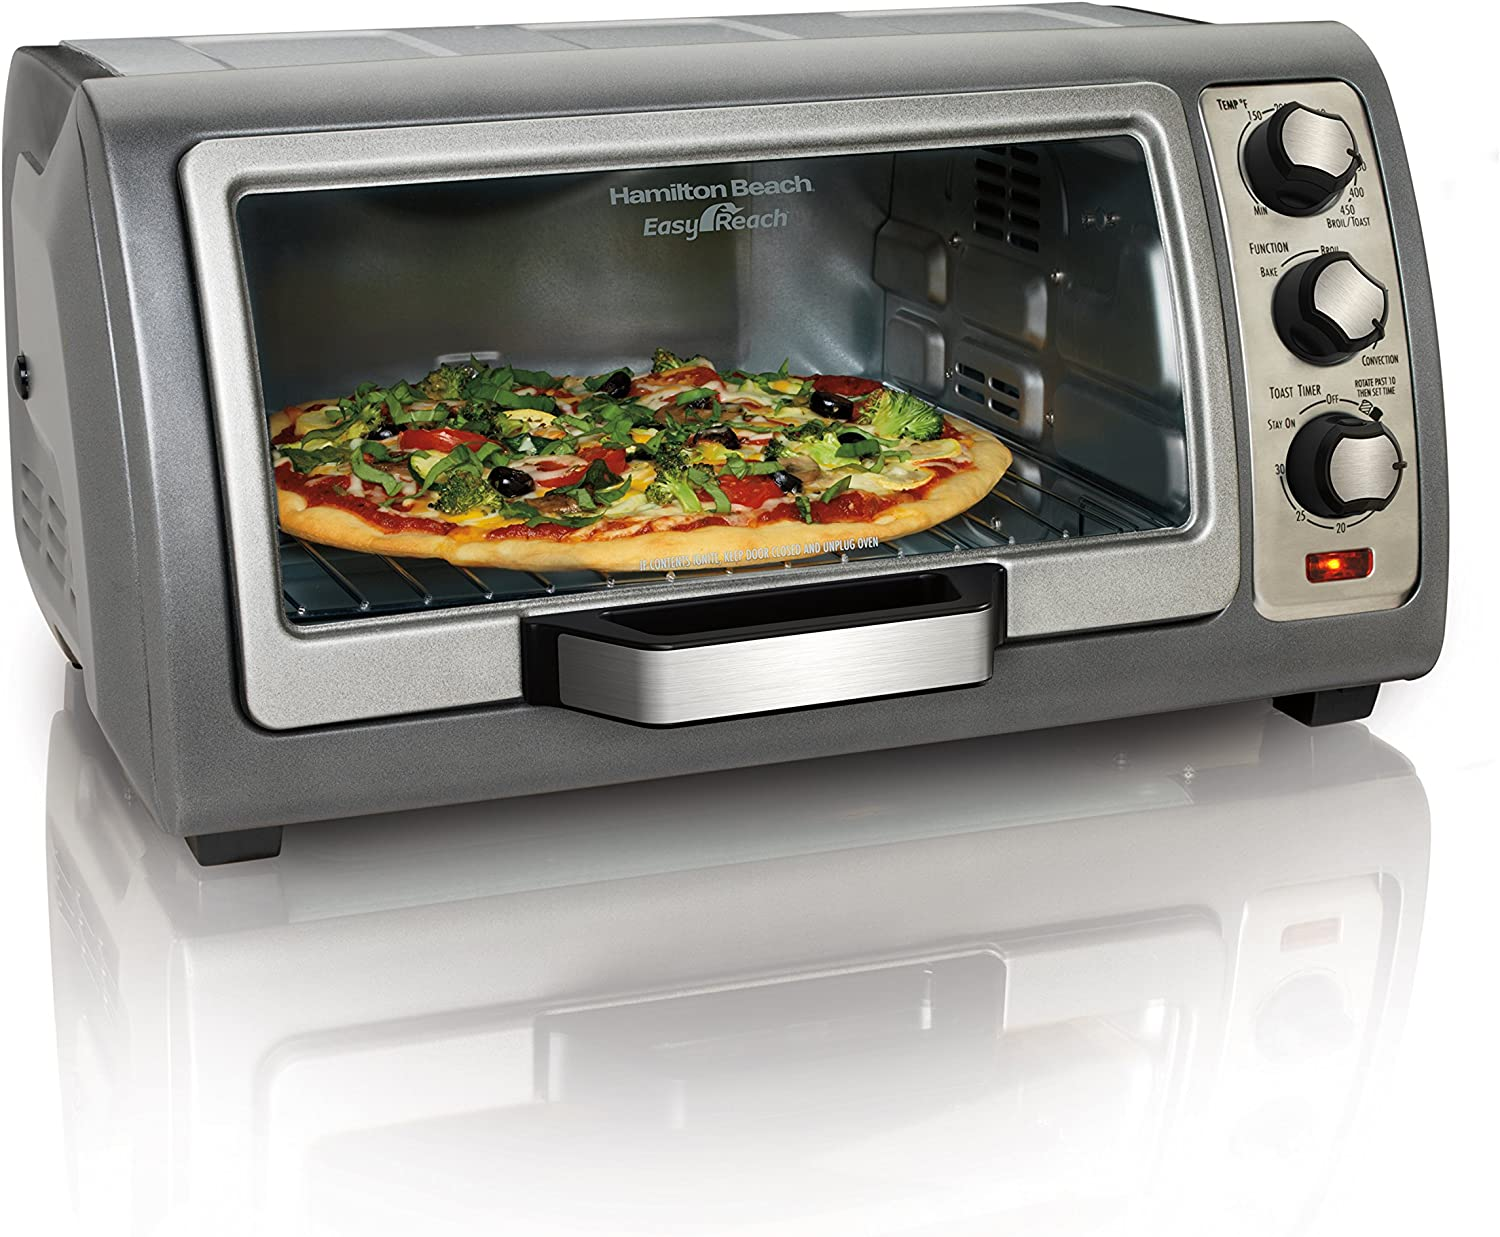 Hamilton Beach 31126 Toaster Oven, Convection Oven, Easy Reach